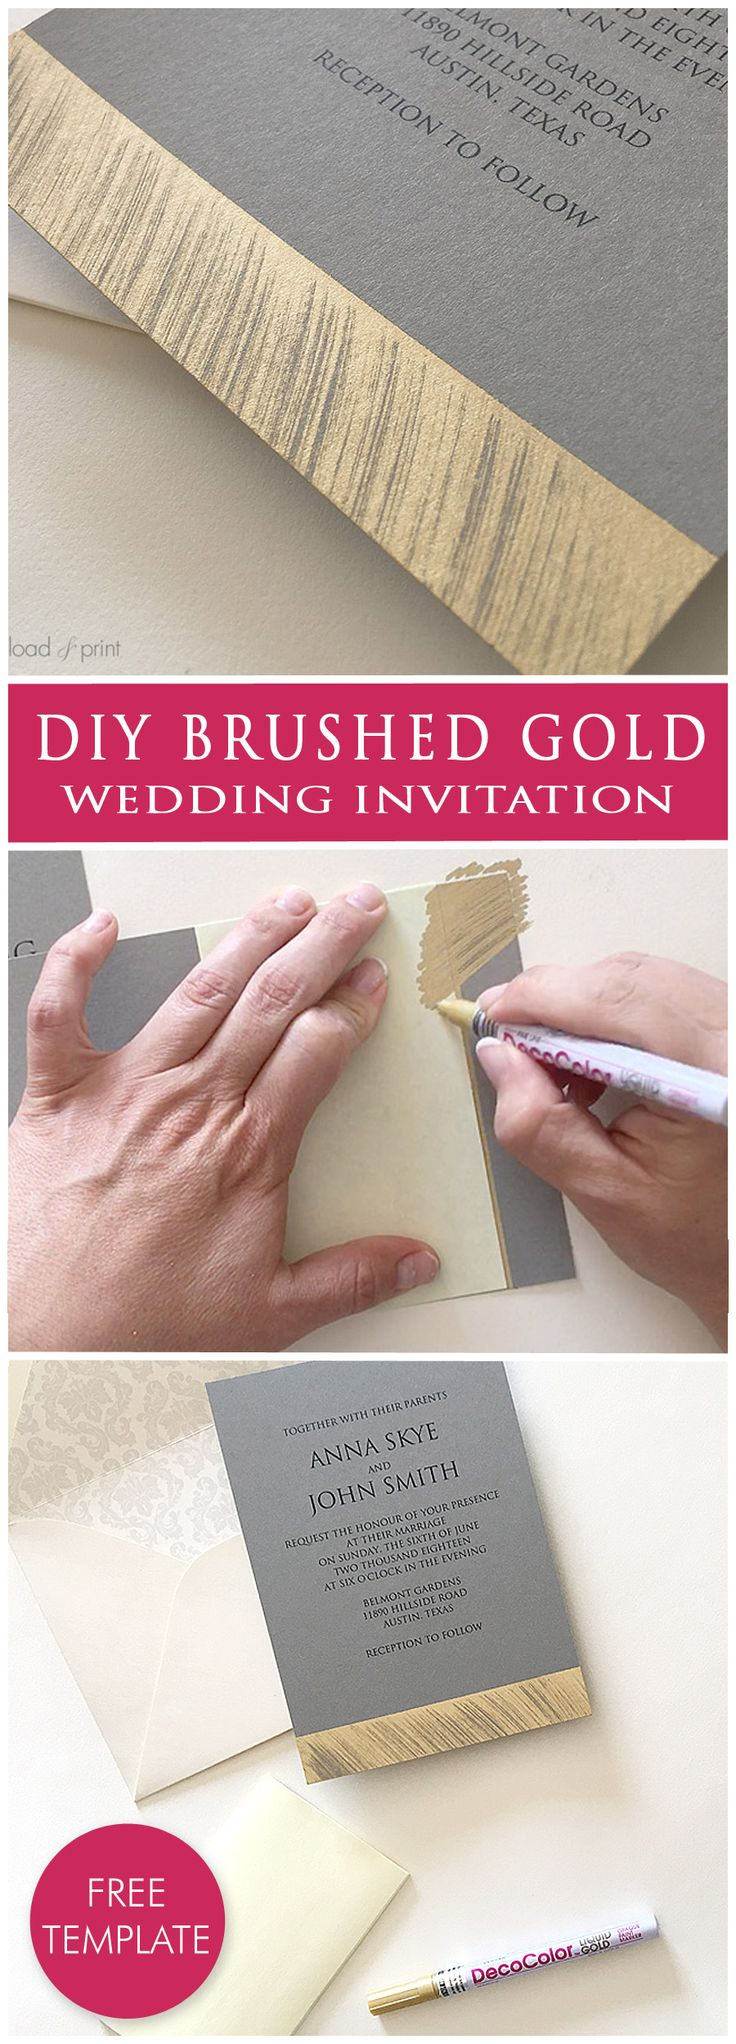 Best 25+ Invitations ideas on Pinterest | Wedding invitations ...